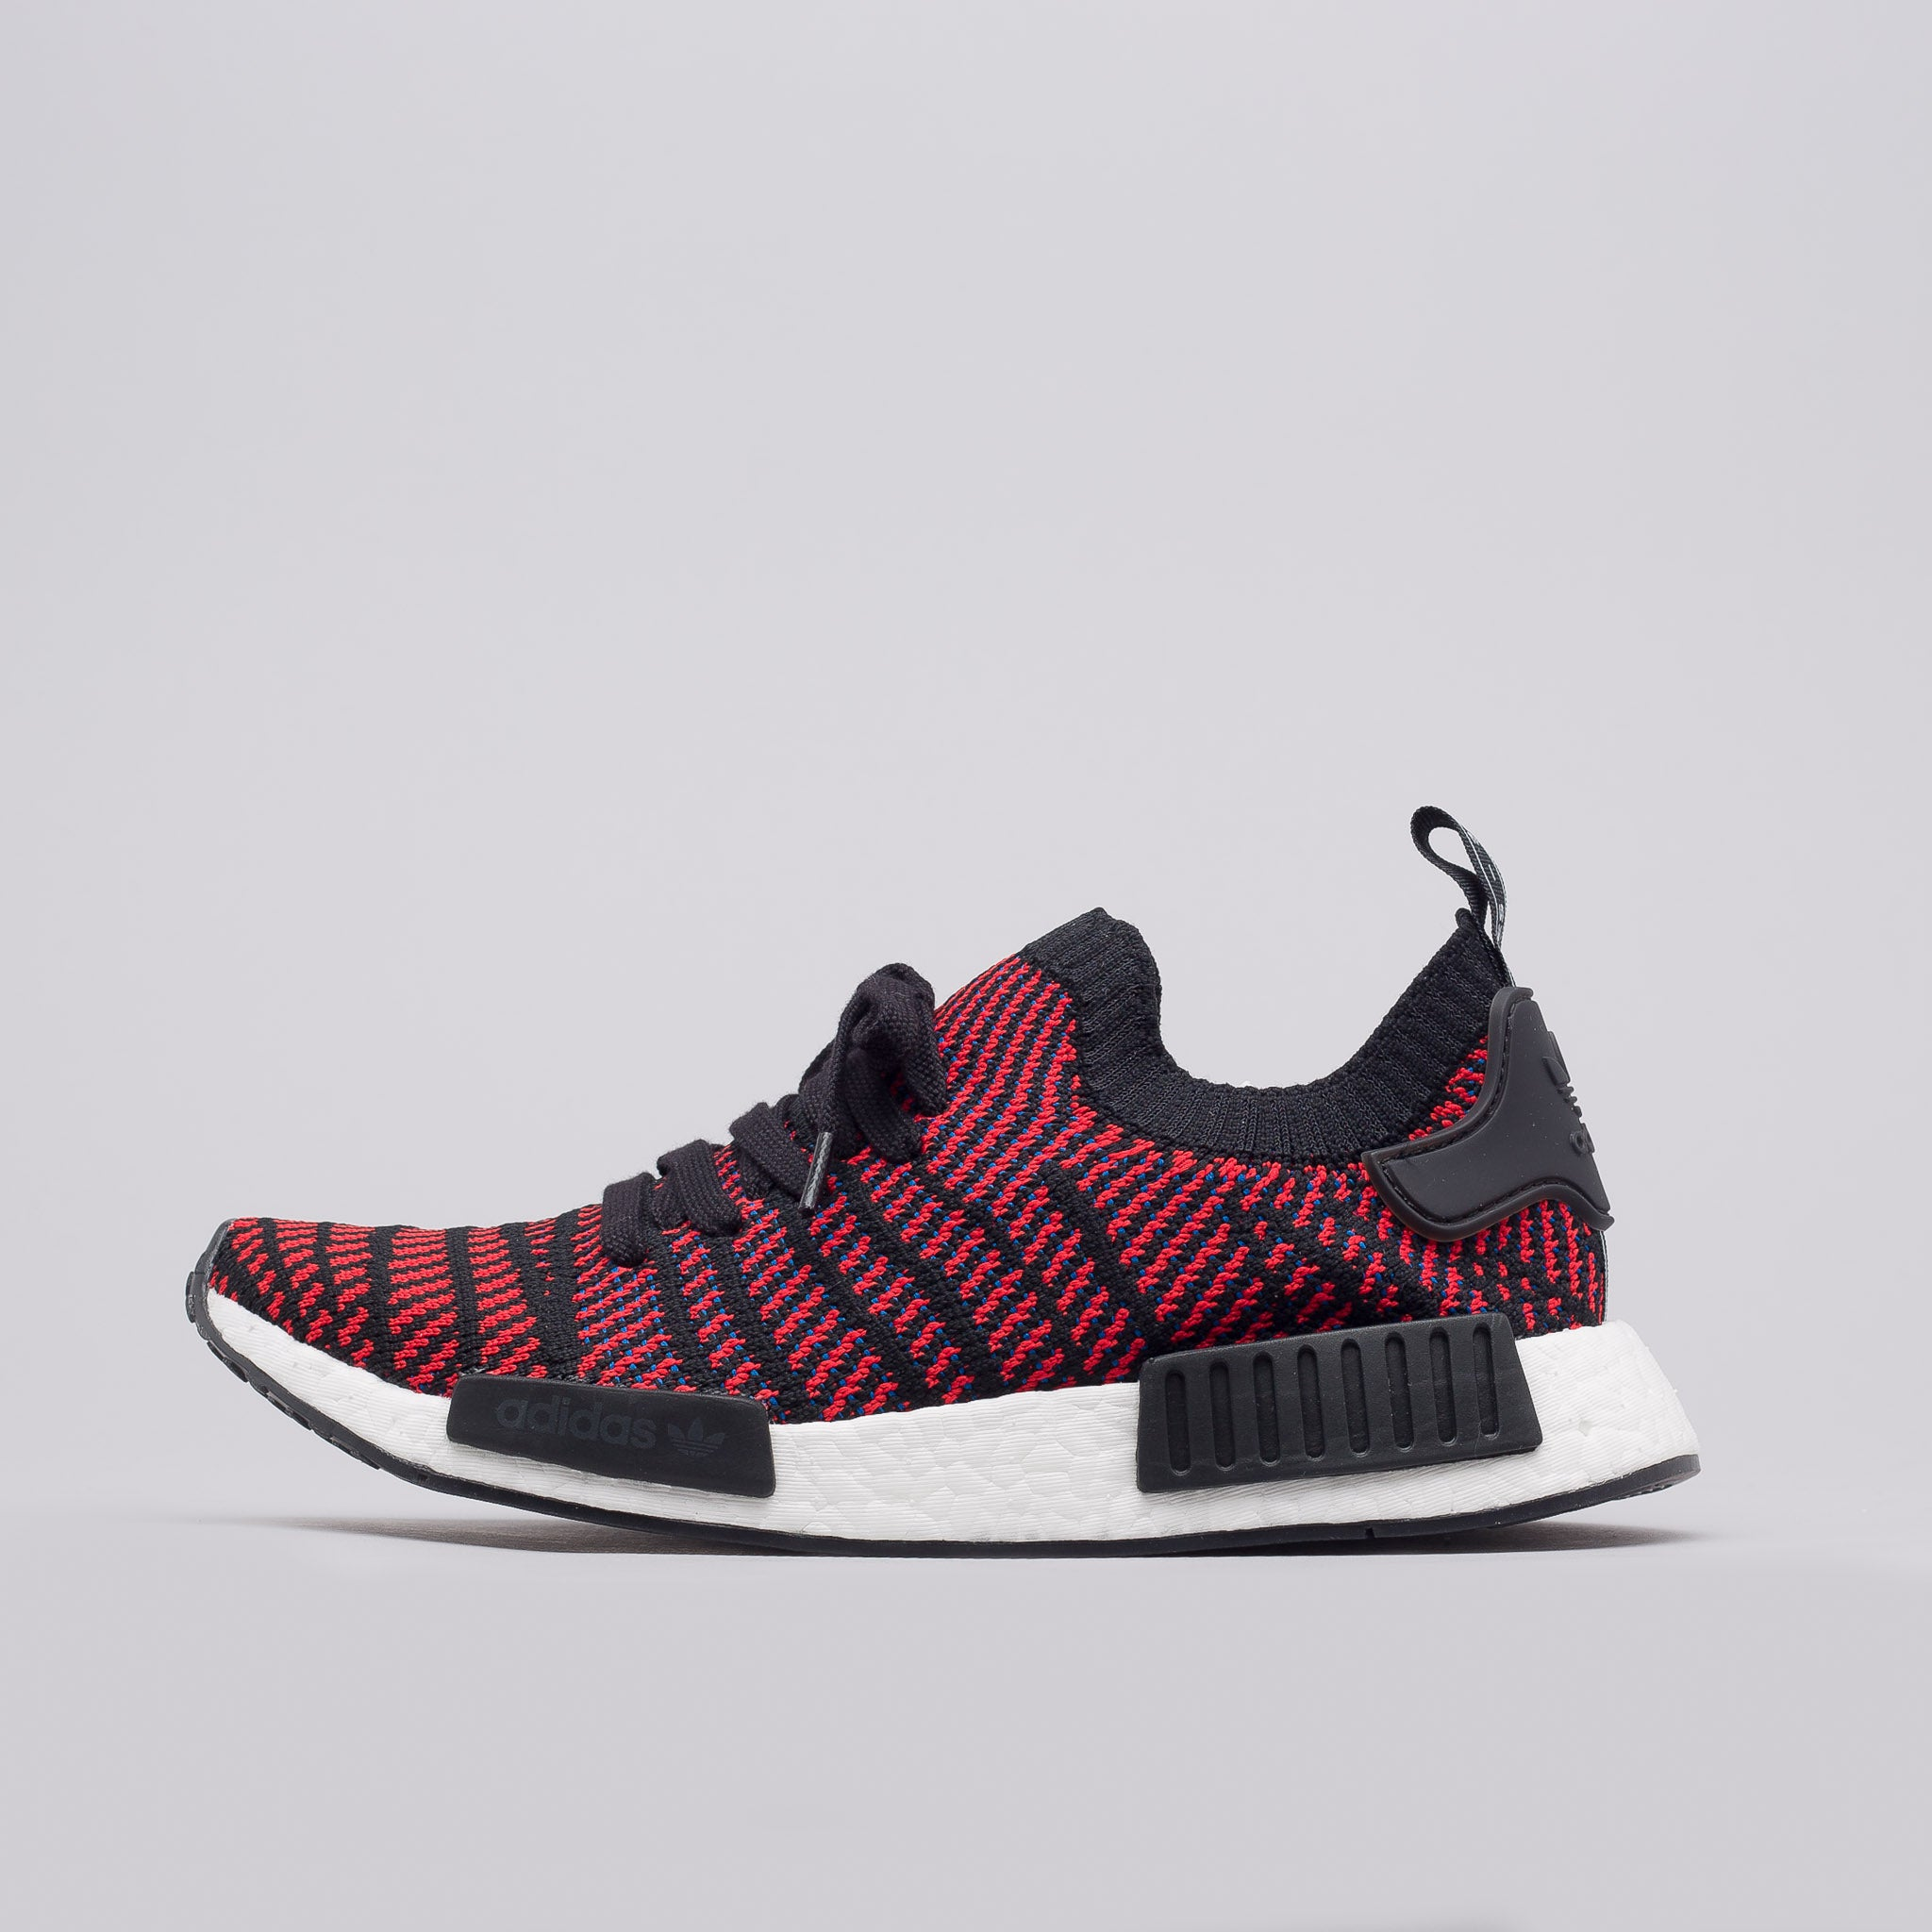 new adidas nmd r1 running shoes solar red s31507 mens size 9